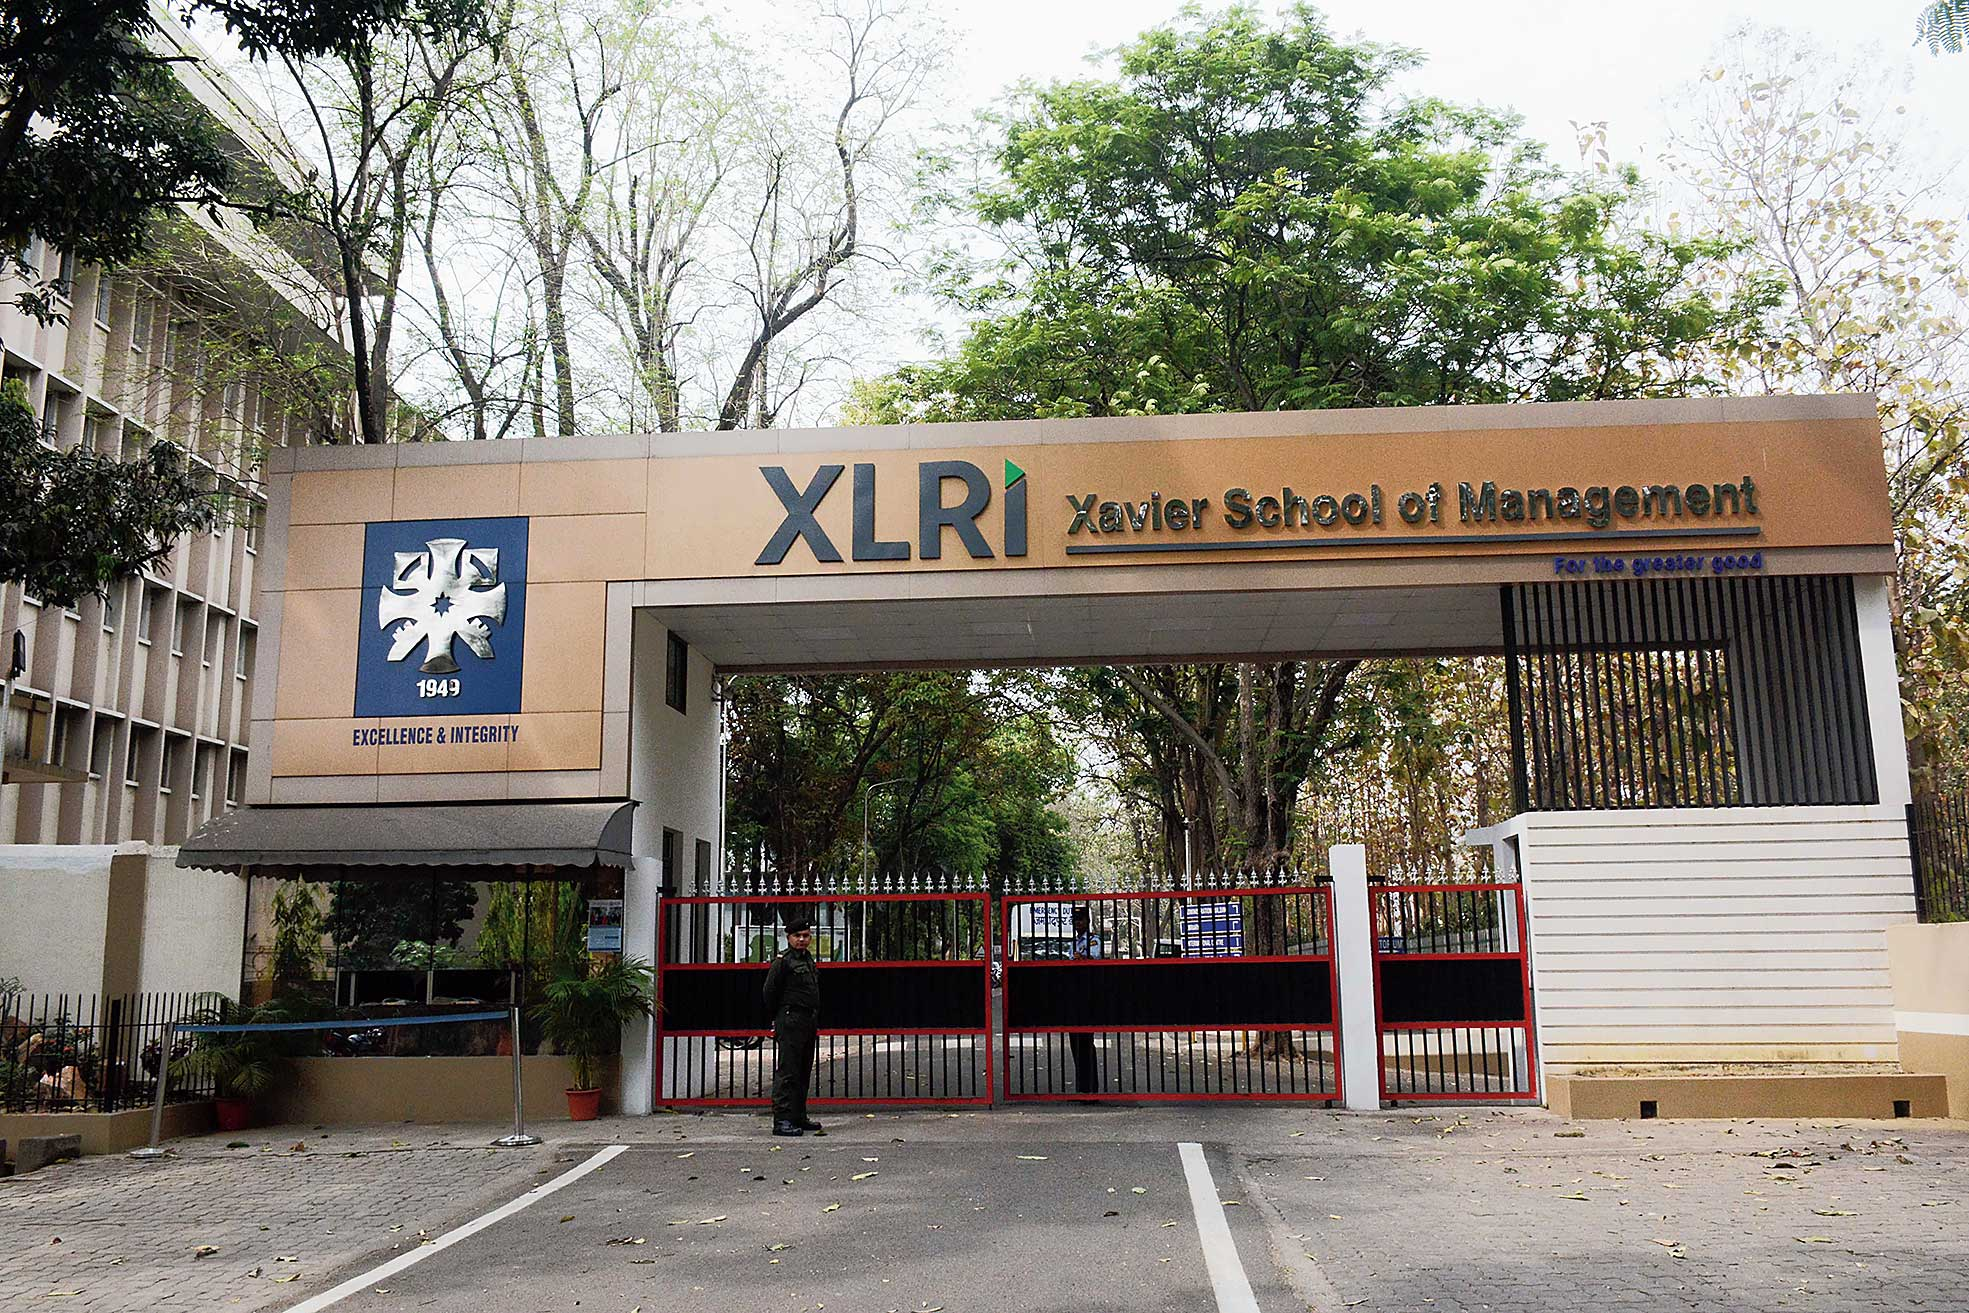 XLRI-Xavier School of Management, in association with some Tata Group companies, established the XLRI JRD Tata Foundation in Business Ethics in 1991.